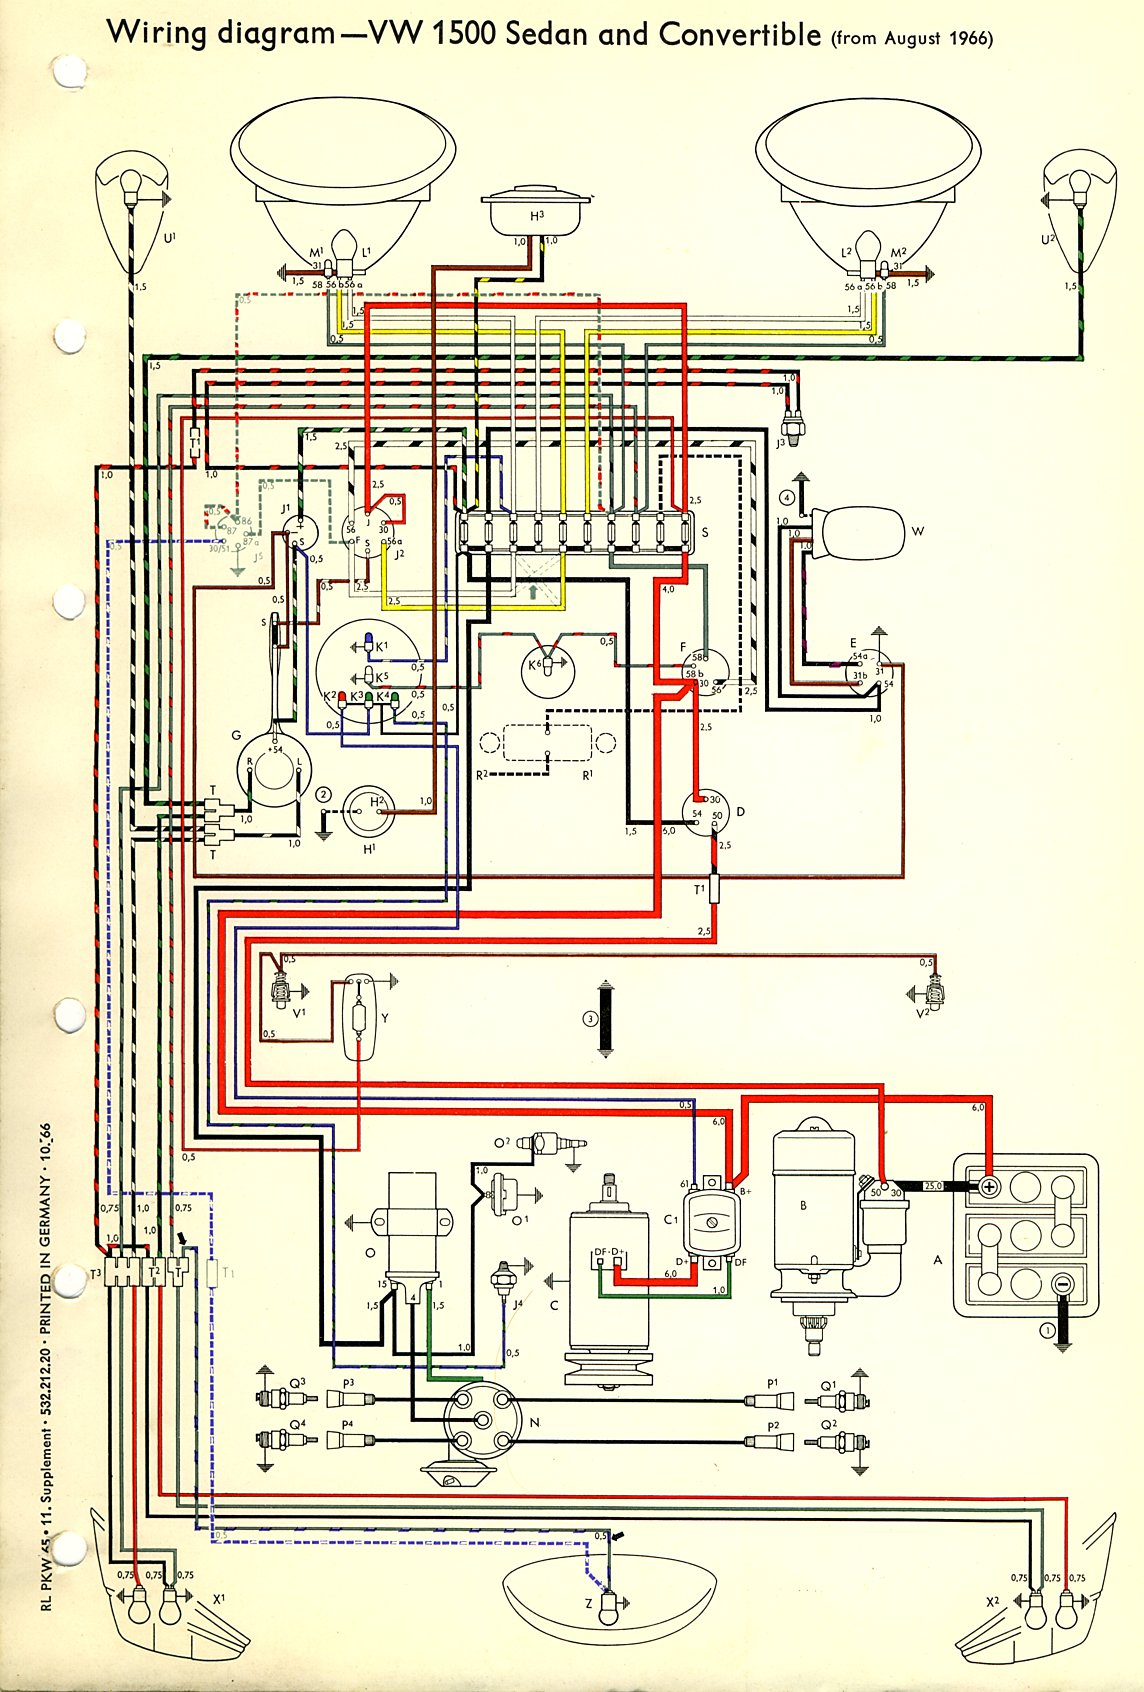 Type 1 Wiring Diagrams Diagram 1974 Chevy Chevelle